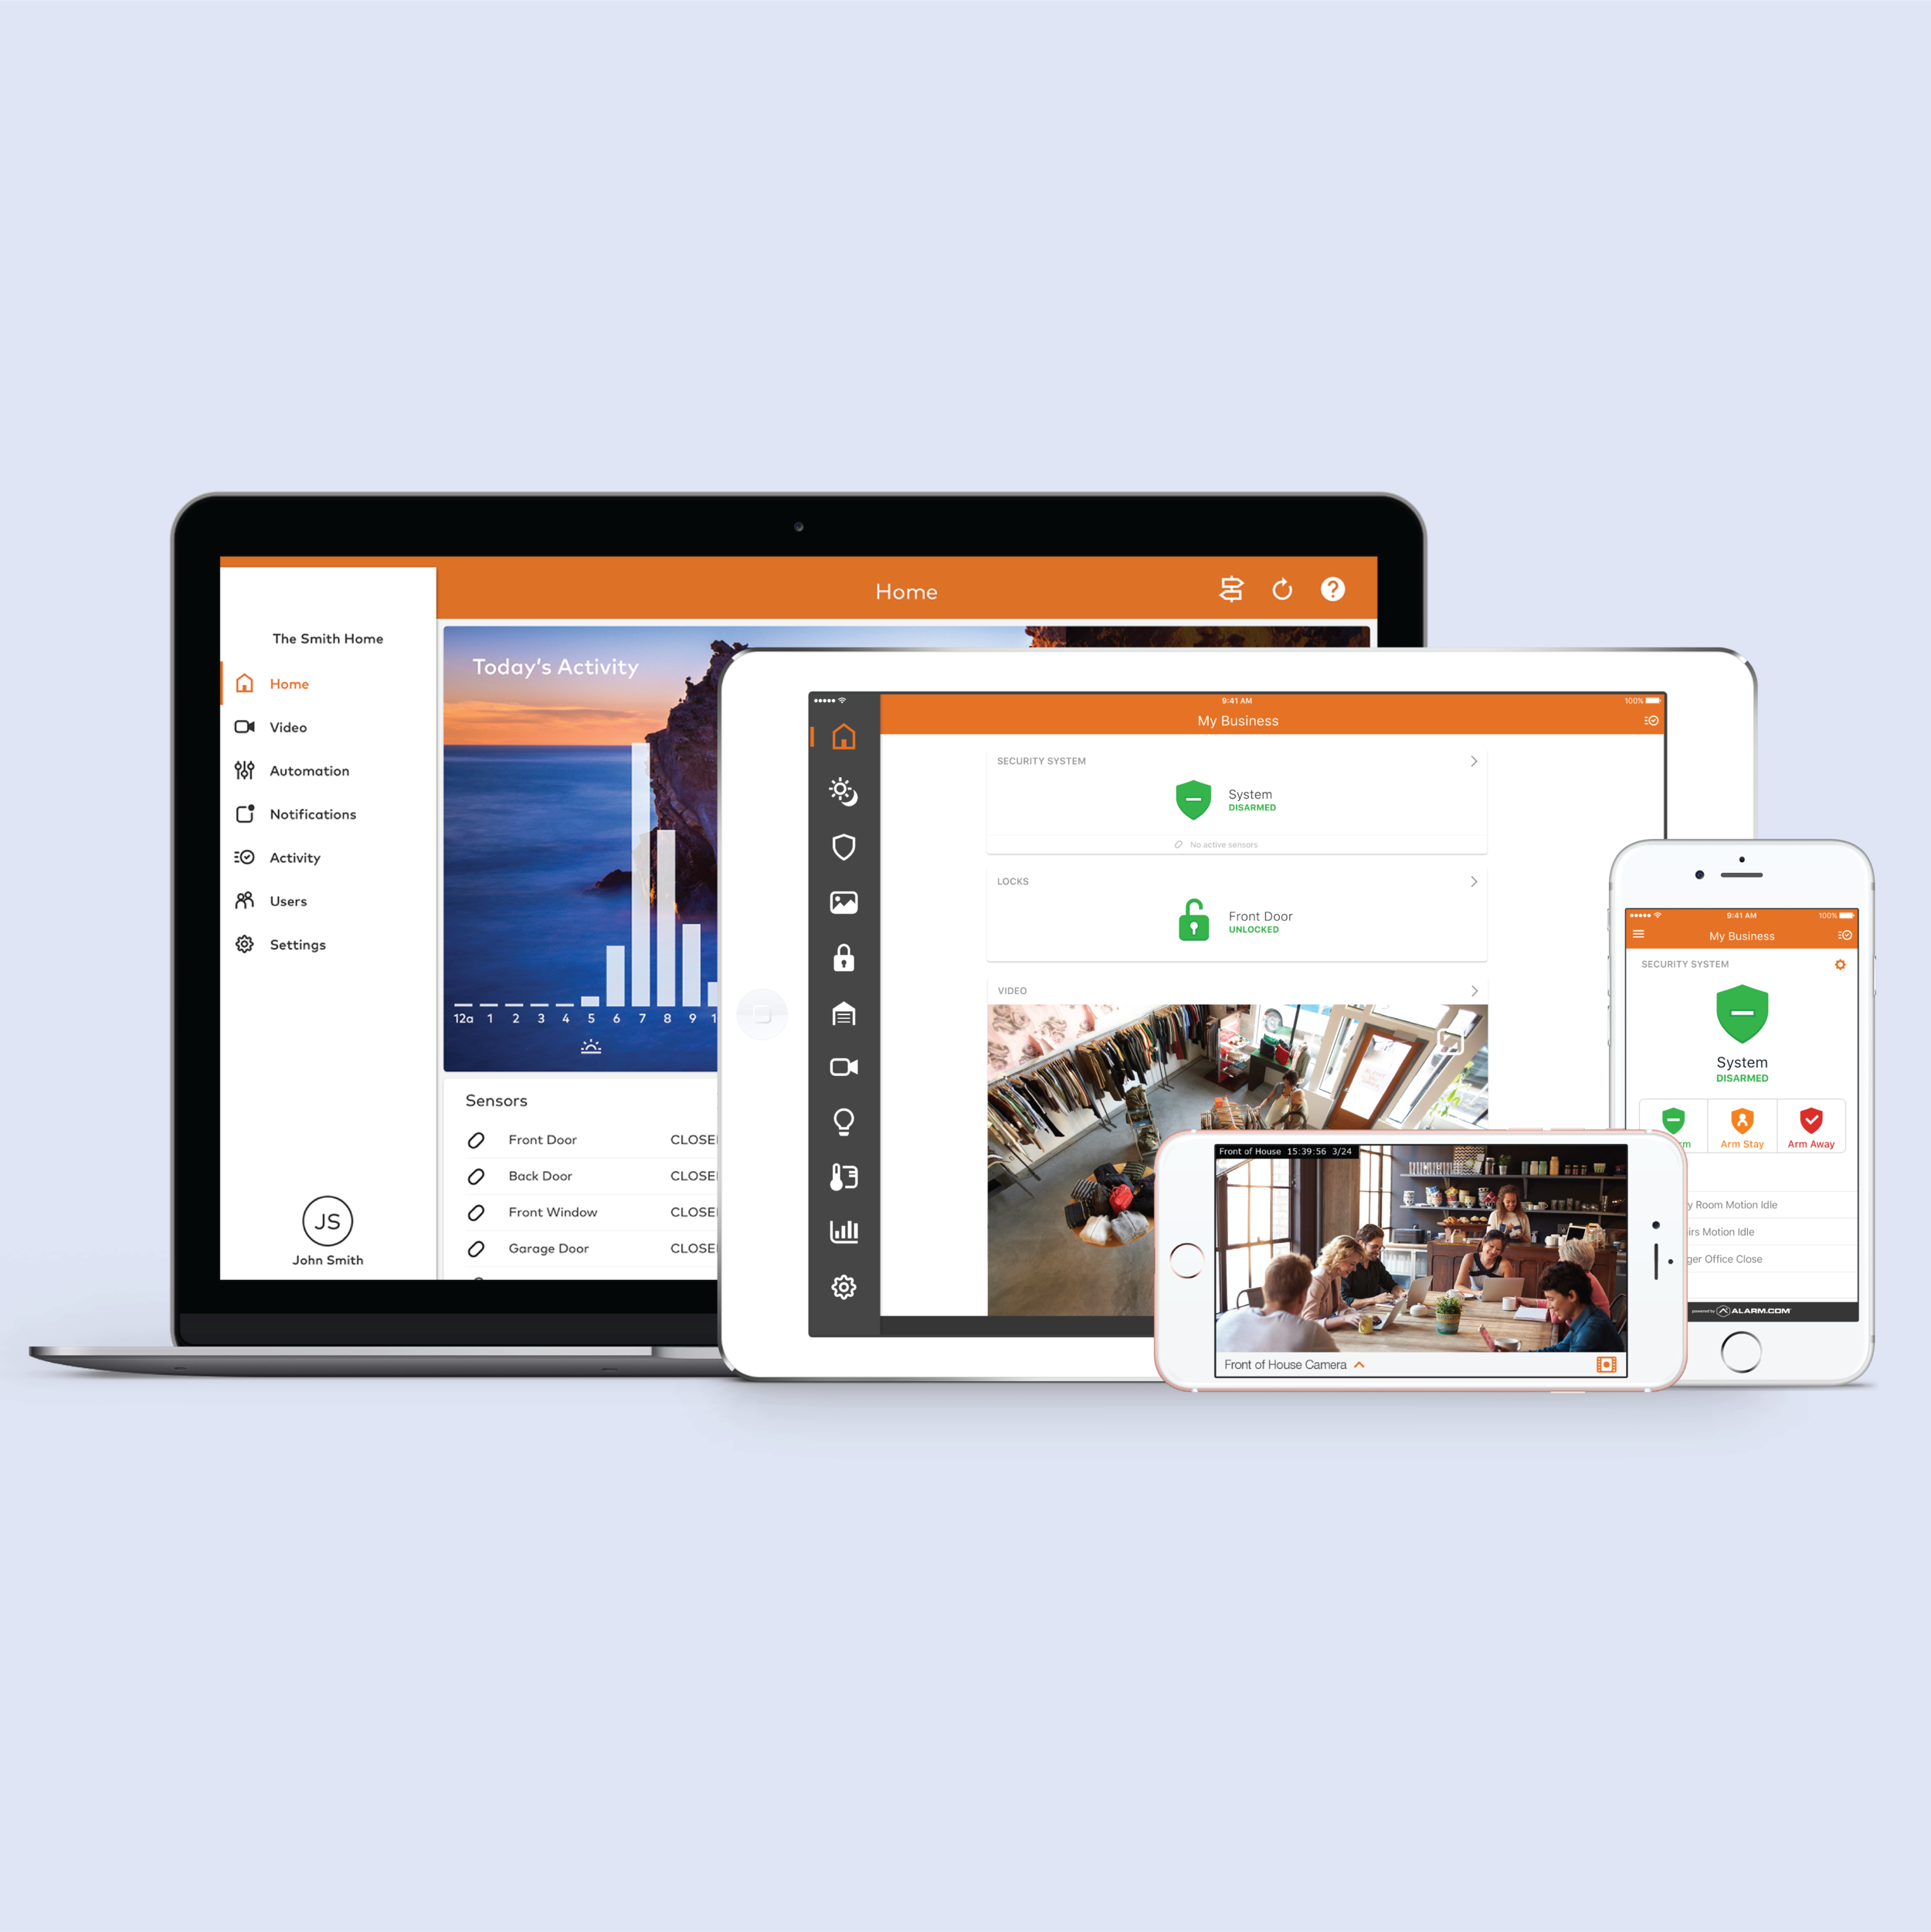 Smart Device Integration - Control every aspect of your system, from your access keypads to cameras on any wifi-connected device.